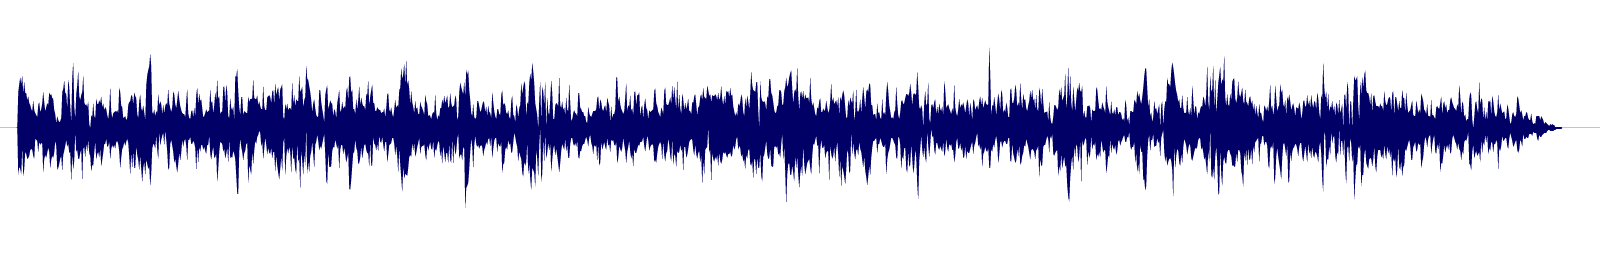 waveform of track #141115